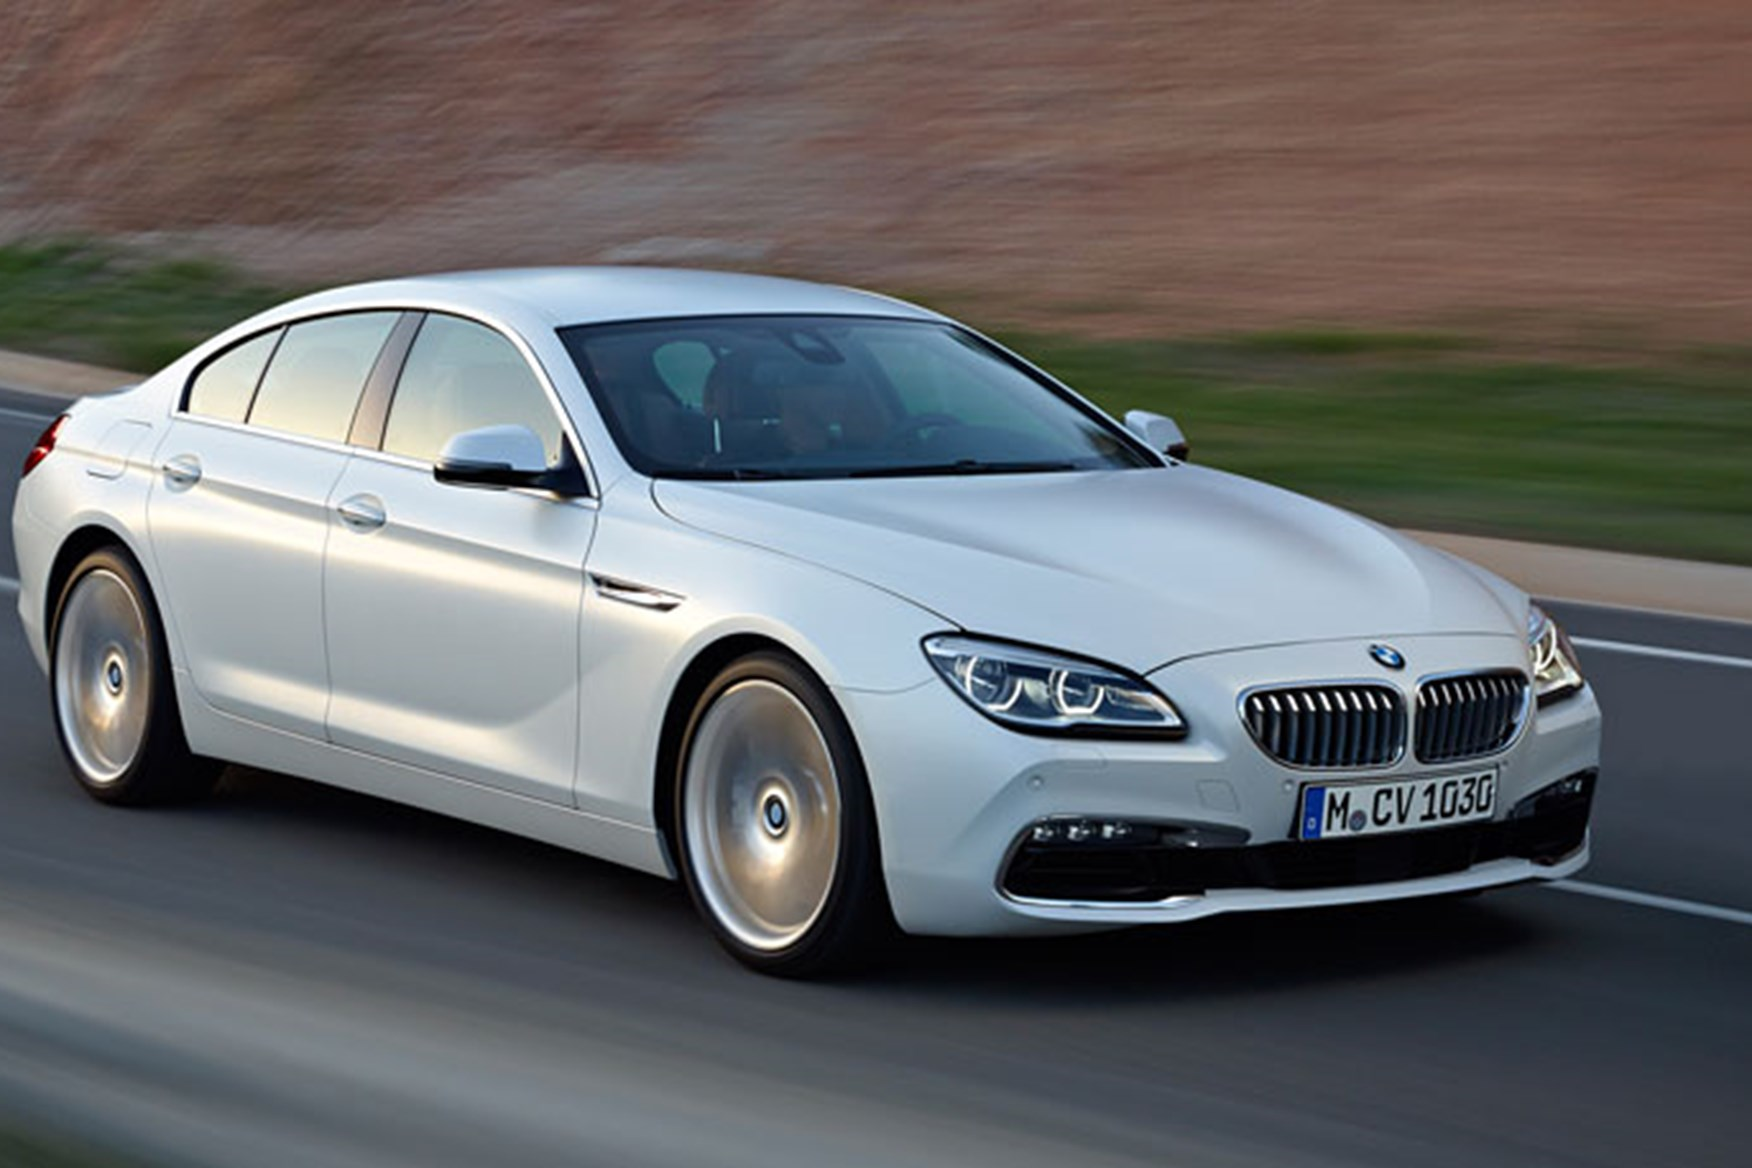 Awesome ... Changes To The BMW 6 Series For 2015 Include A New Full Width Air  Intake Along The Front Bumper ...